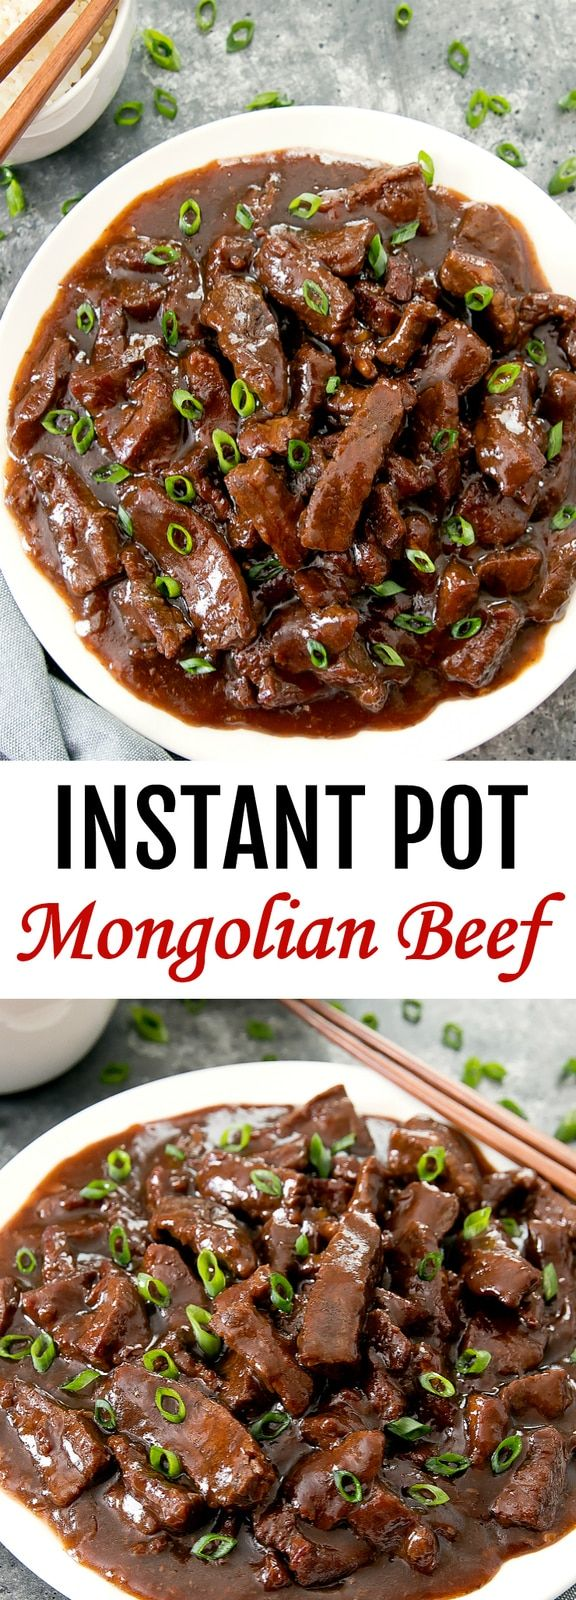 10394b6dbd8734514d513555abe2e978 Instant Pot Mongolian Beef. Everything cooks in one pot for easy clean up. Easy,...